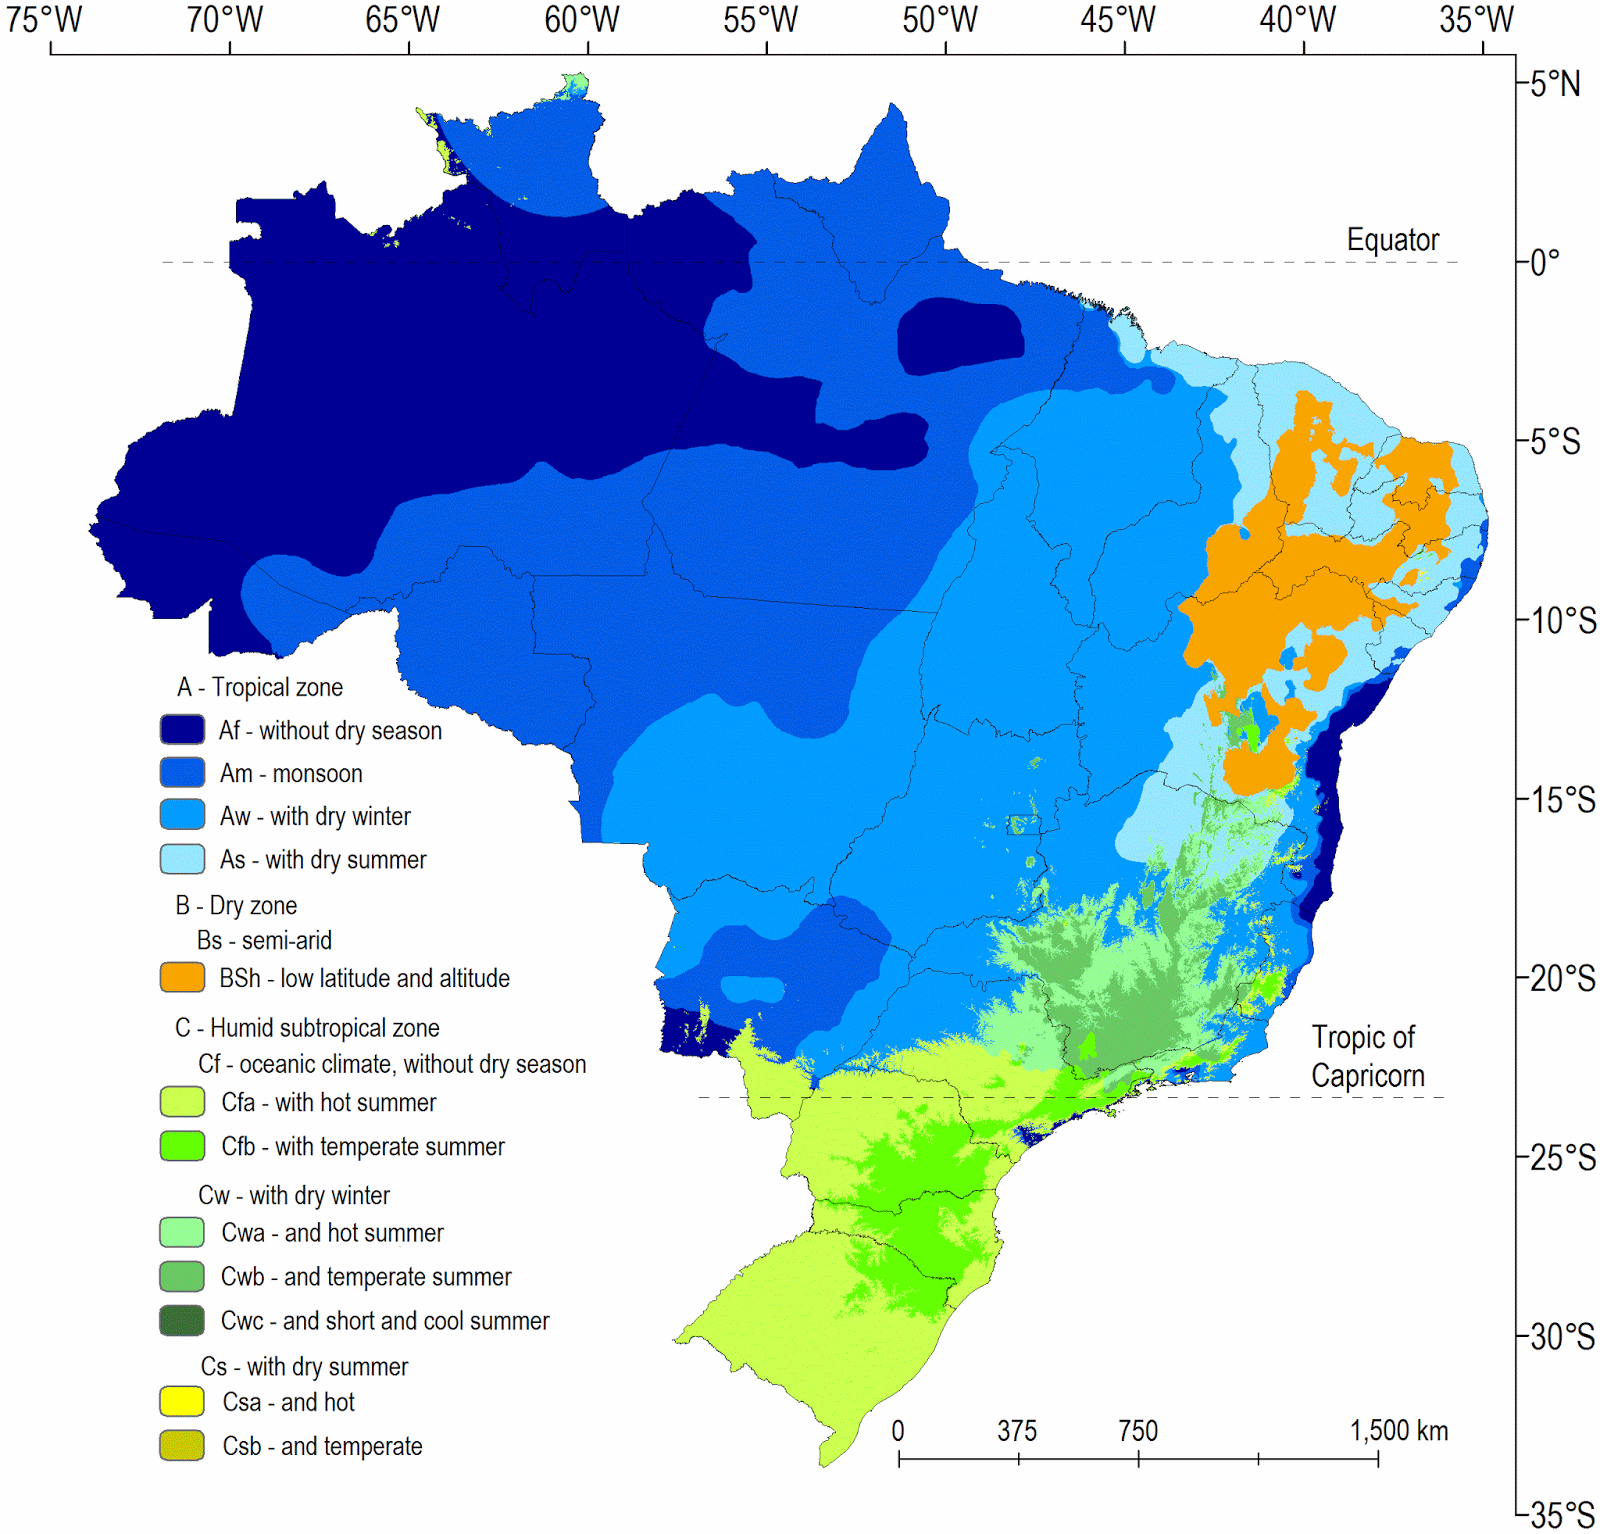 Climate Classification For Brazil According To The Köppen - Brazil main ports harbour map